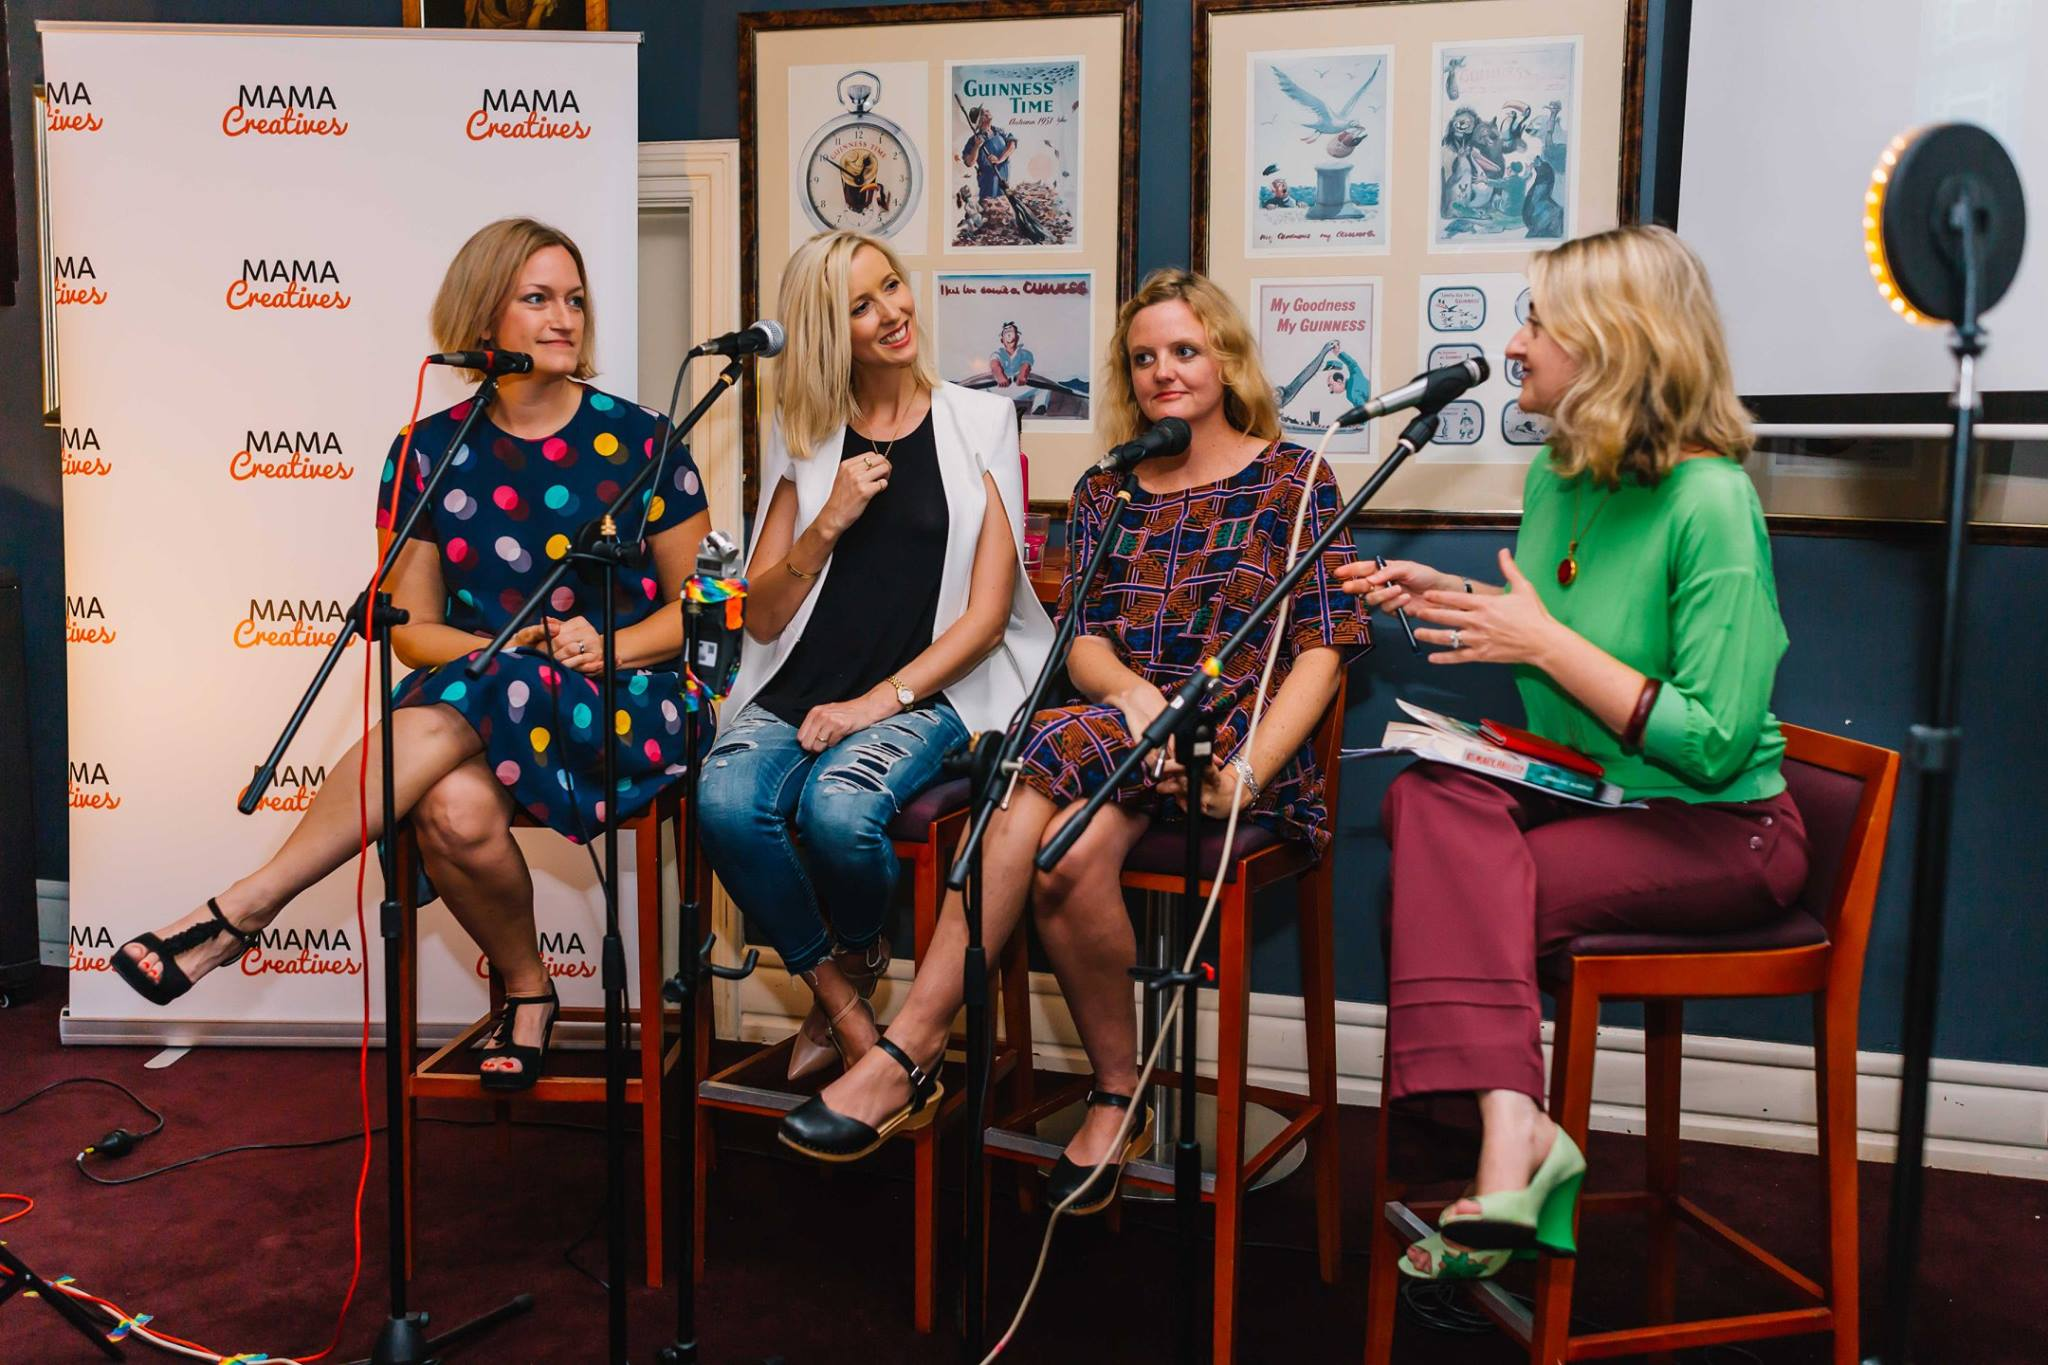 In action, at our Mama Creatives Expert Blogger Panel: 'Sharing your voice & creative passion', featuring Alexx Stuart, founder of Low Tox Life, Lorraine Murphy, founder of The Remarkables Group & Jo Dunlop, creator of GLOBAL FASHPACK.